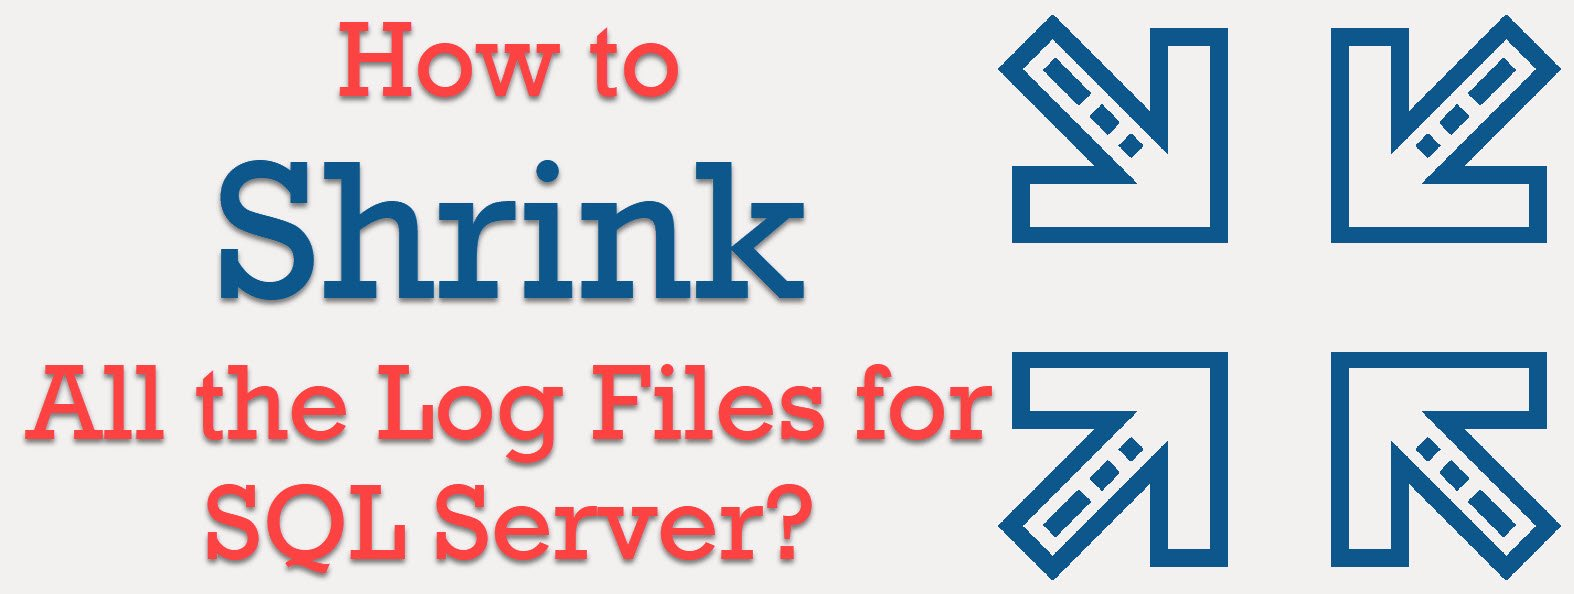 How to Shrink All the Log Files for SQL Server? - Interview Question of the Week #203 shrinklog